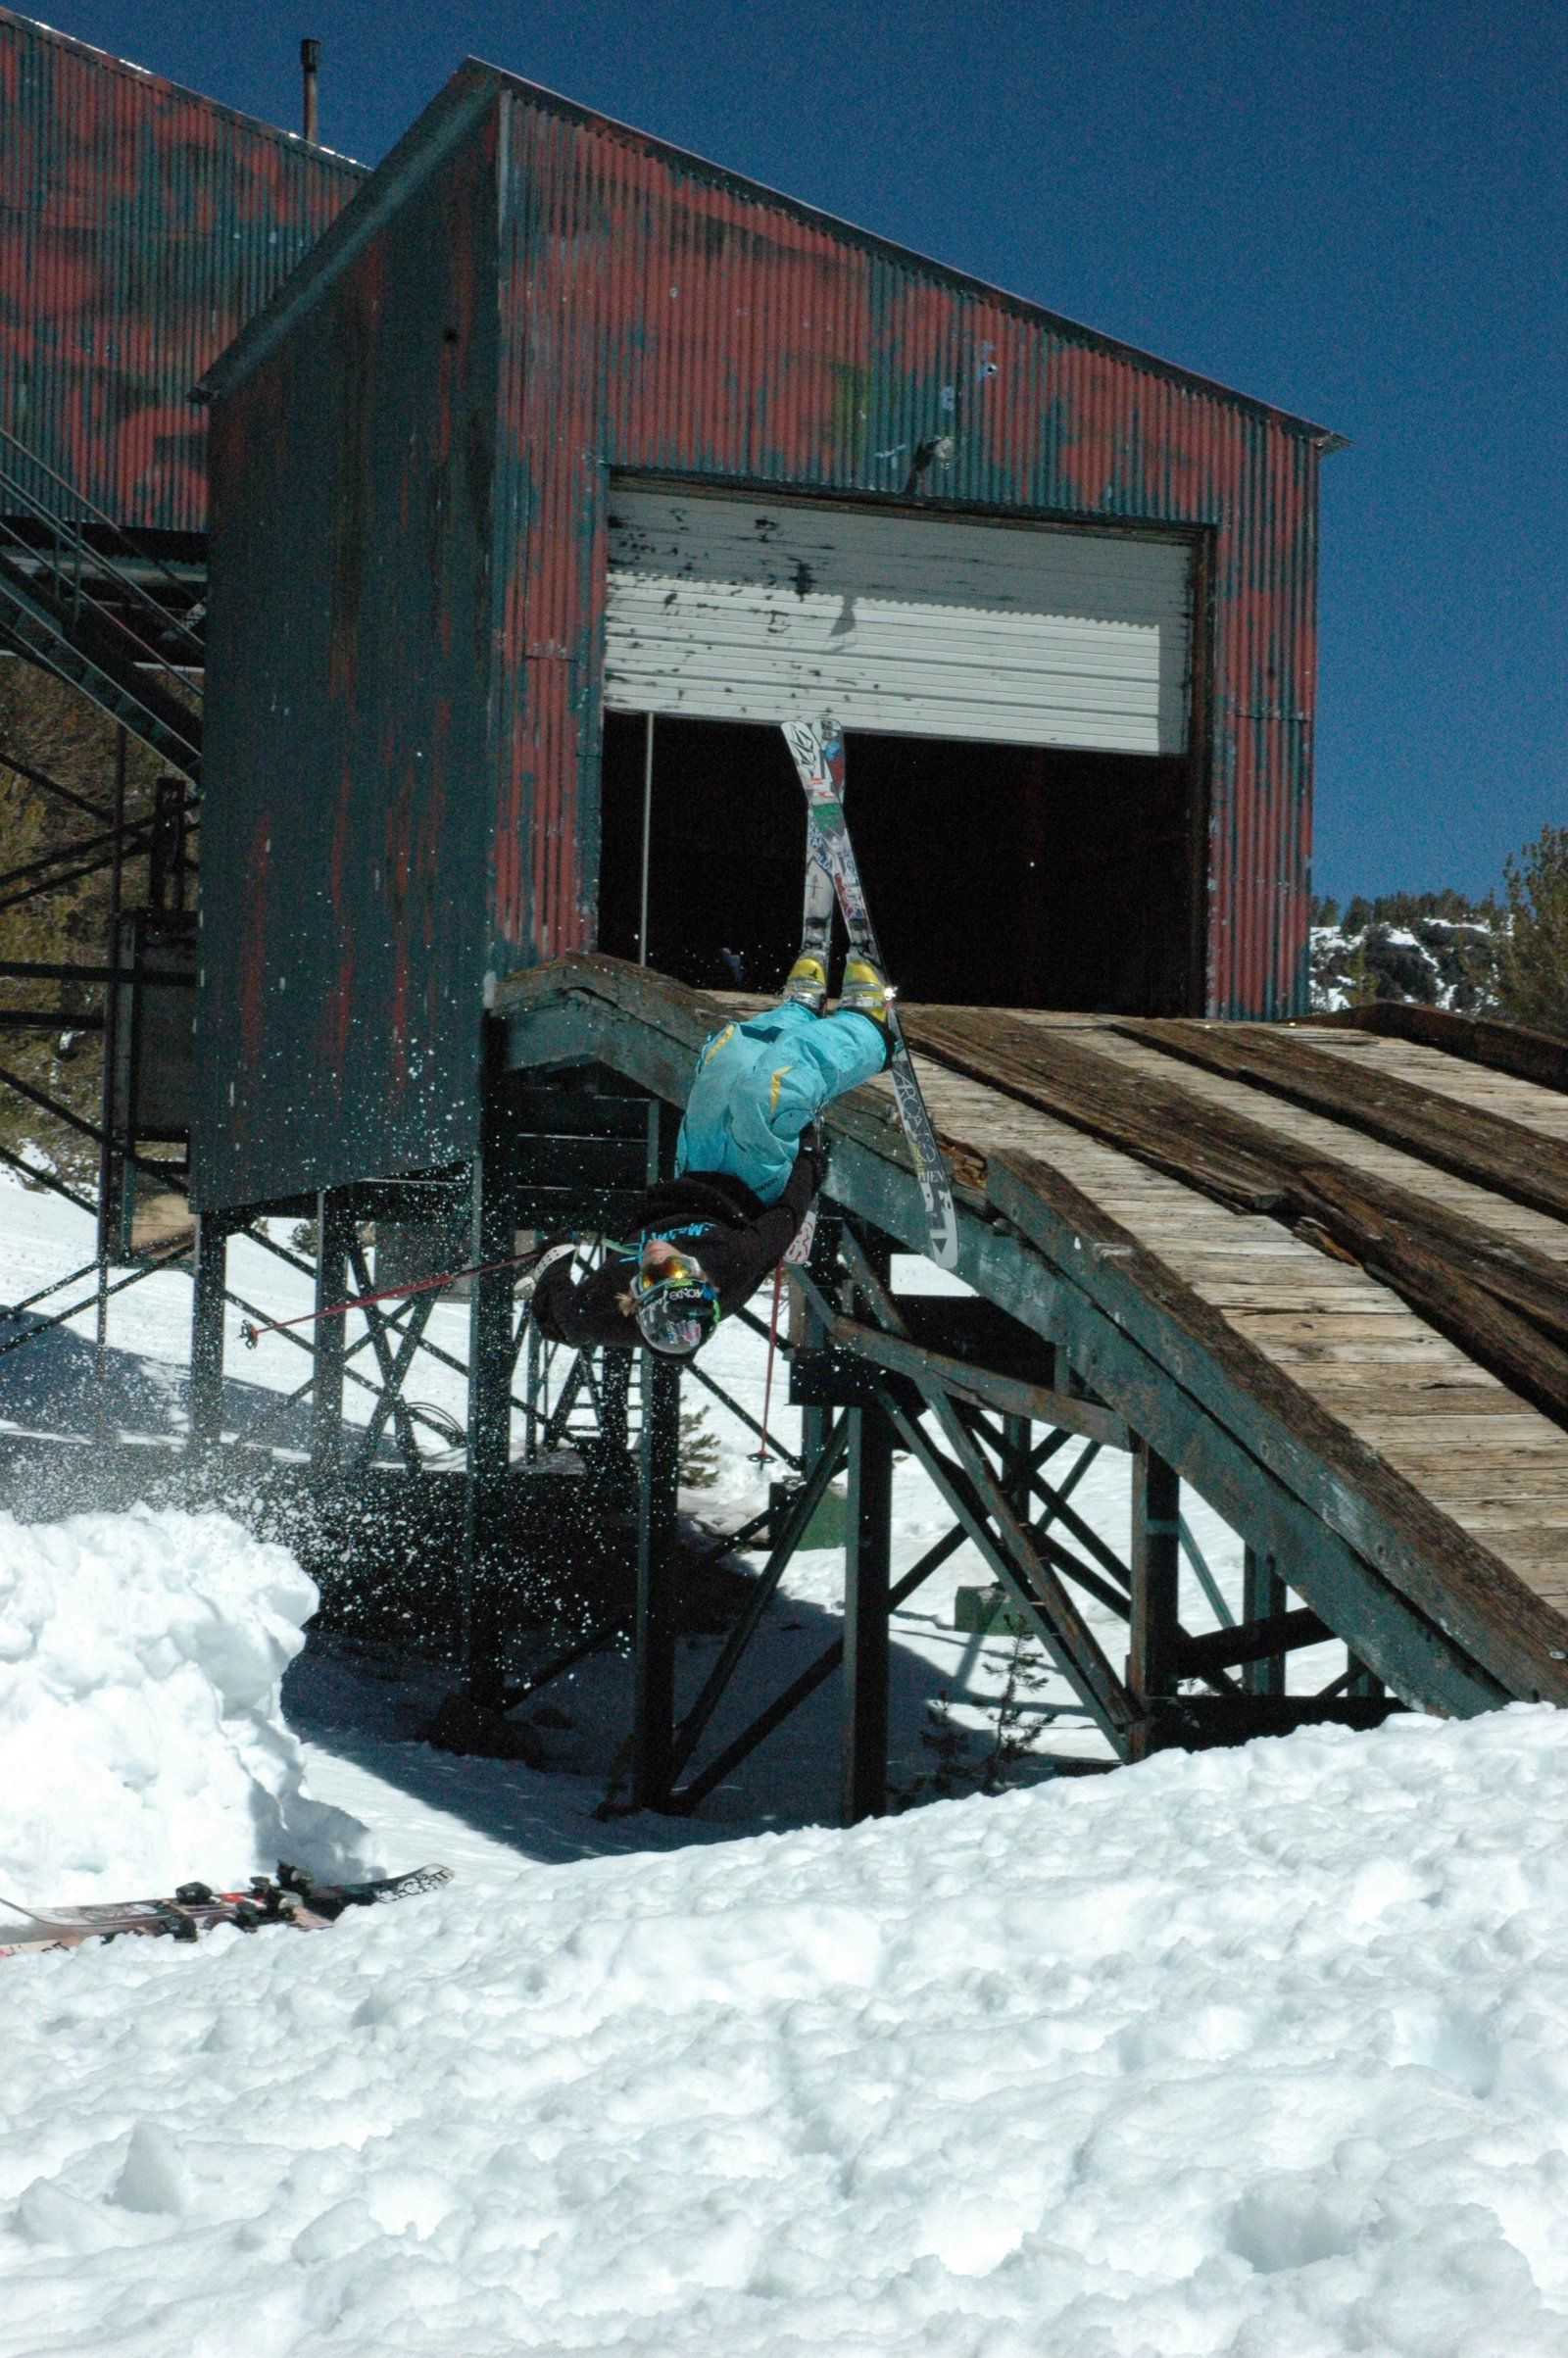 Old Chairlift